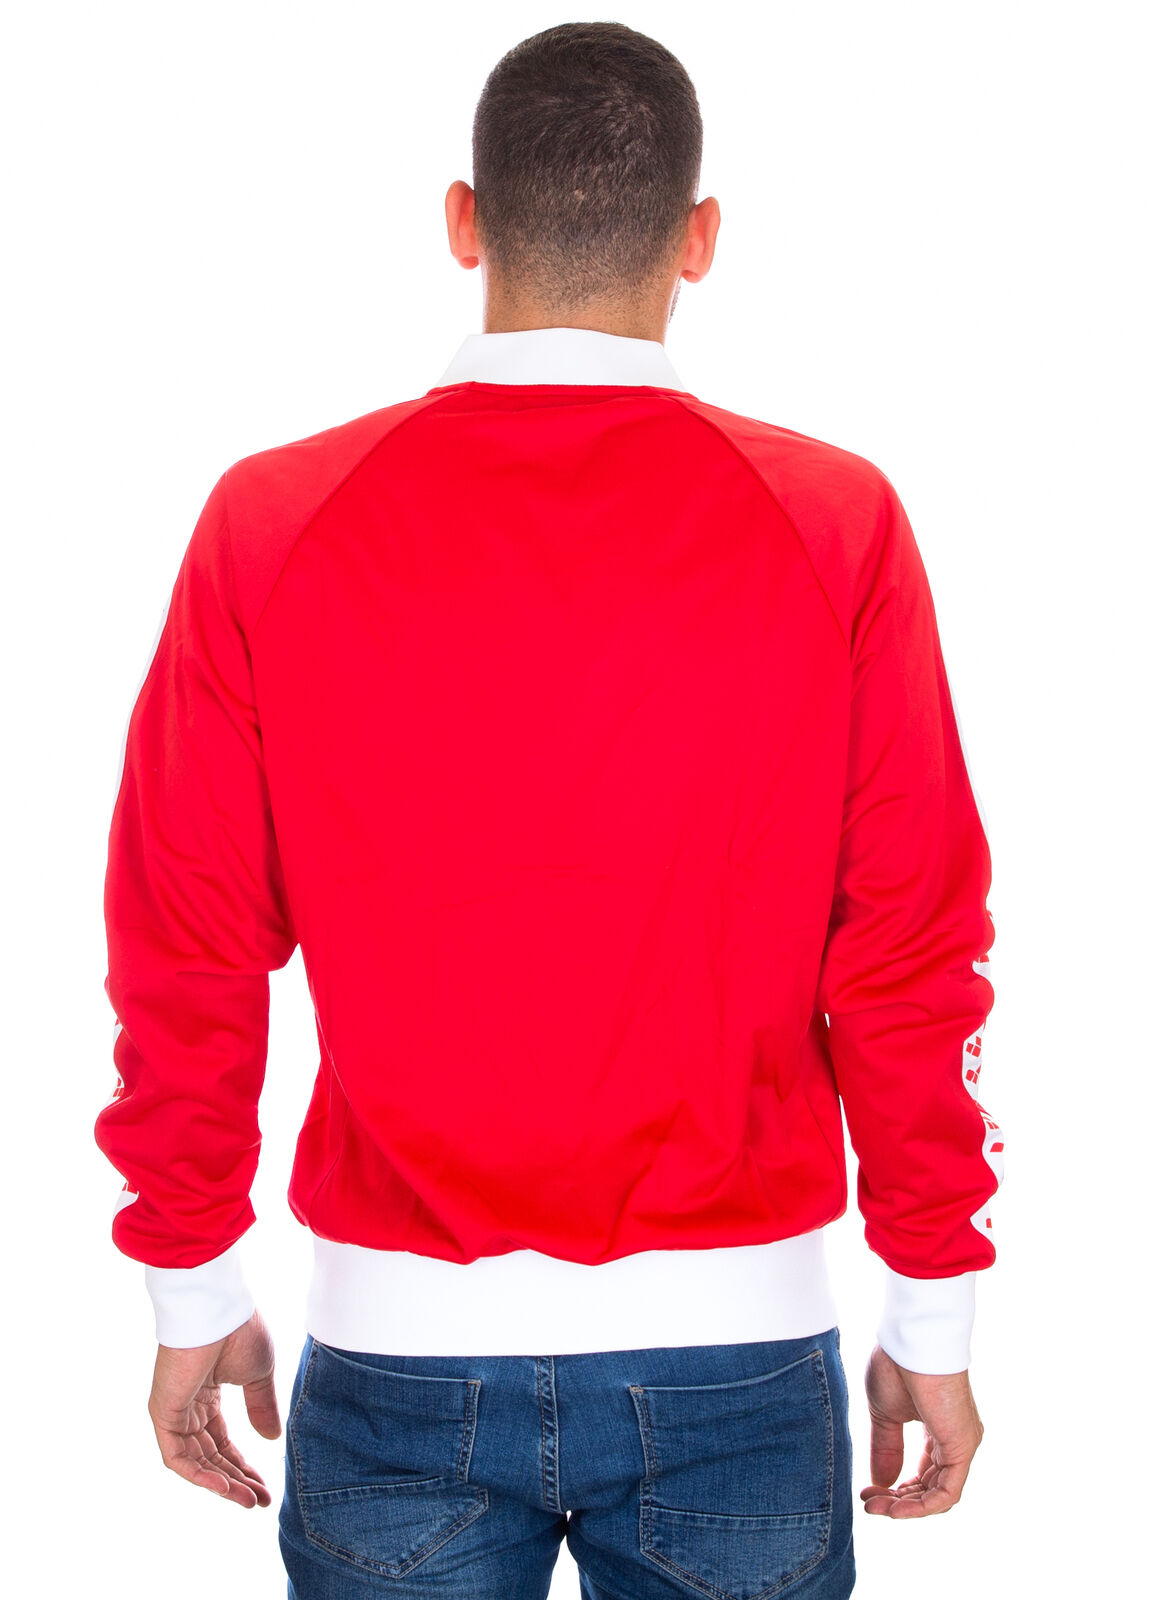 ARENA - GIACCA ZIP UOMO - ICONS RELAX IV TEAM JACKET - 001229401 - RED/WHITE